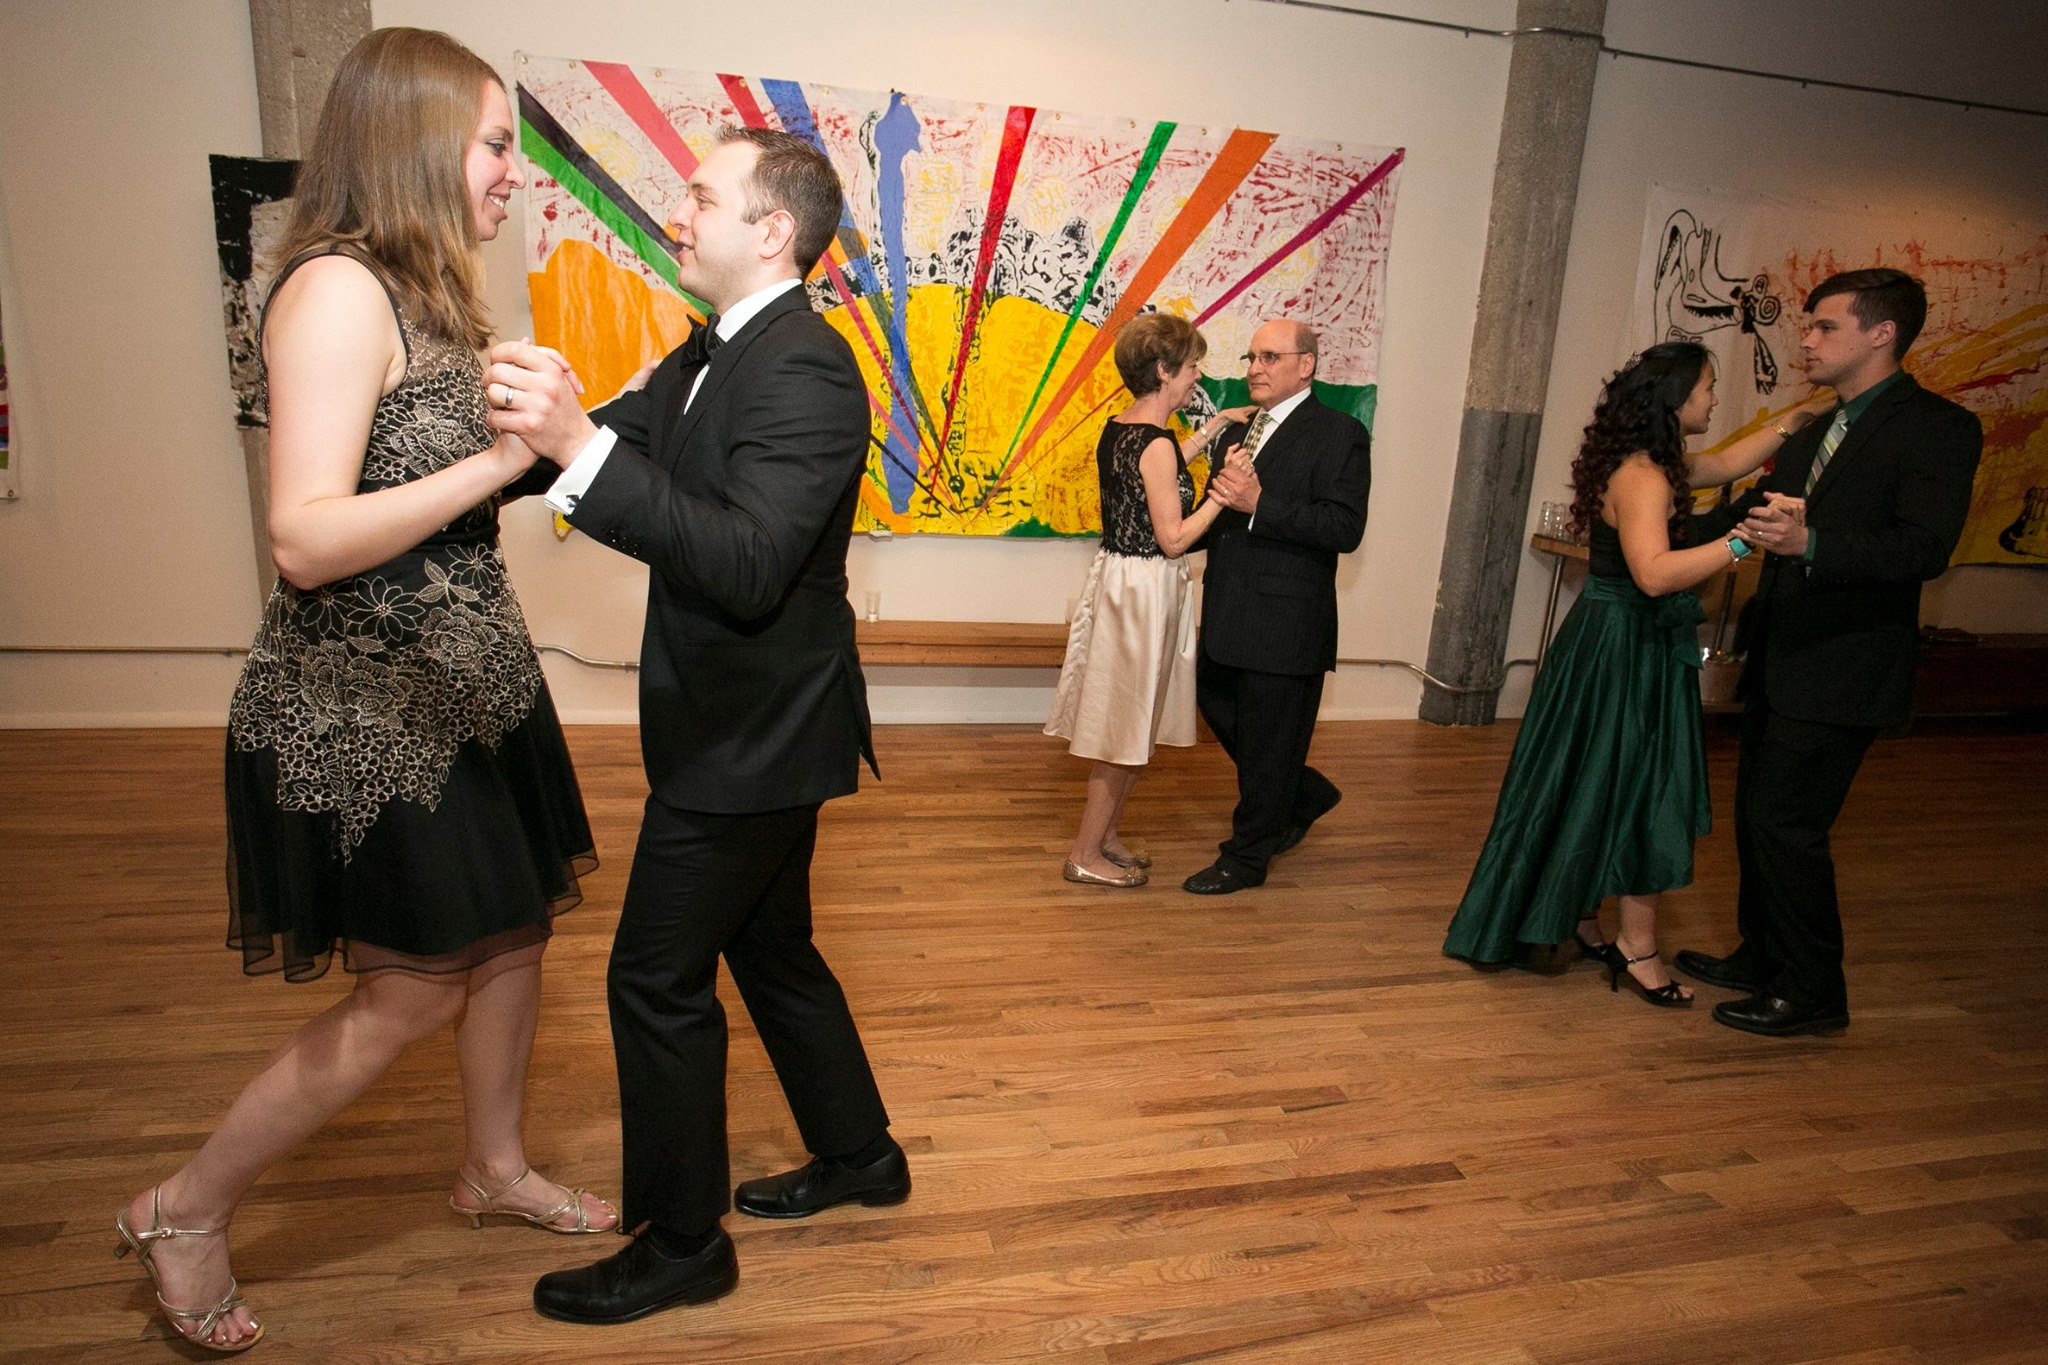 Group dance classes in Chicago